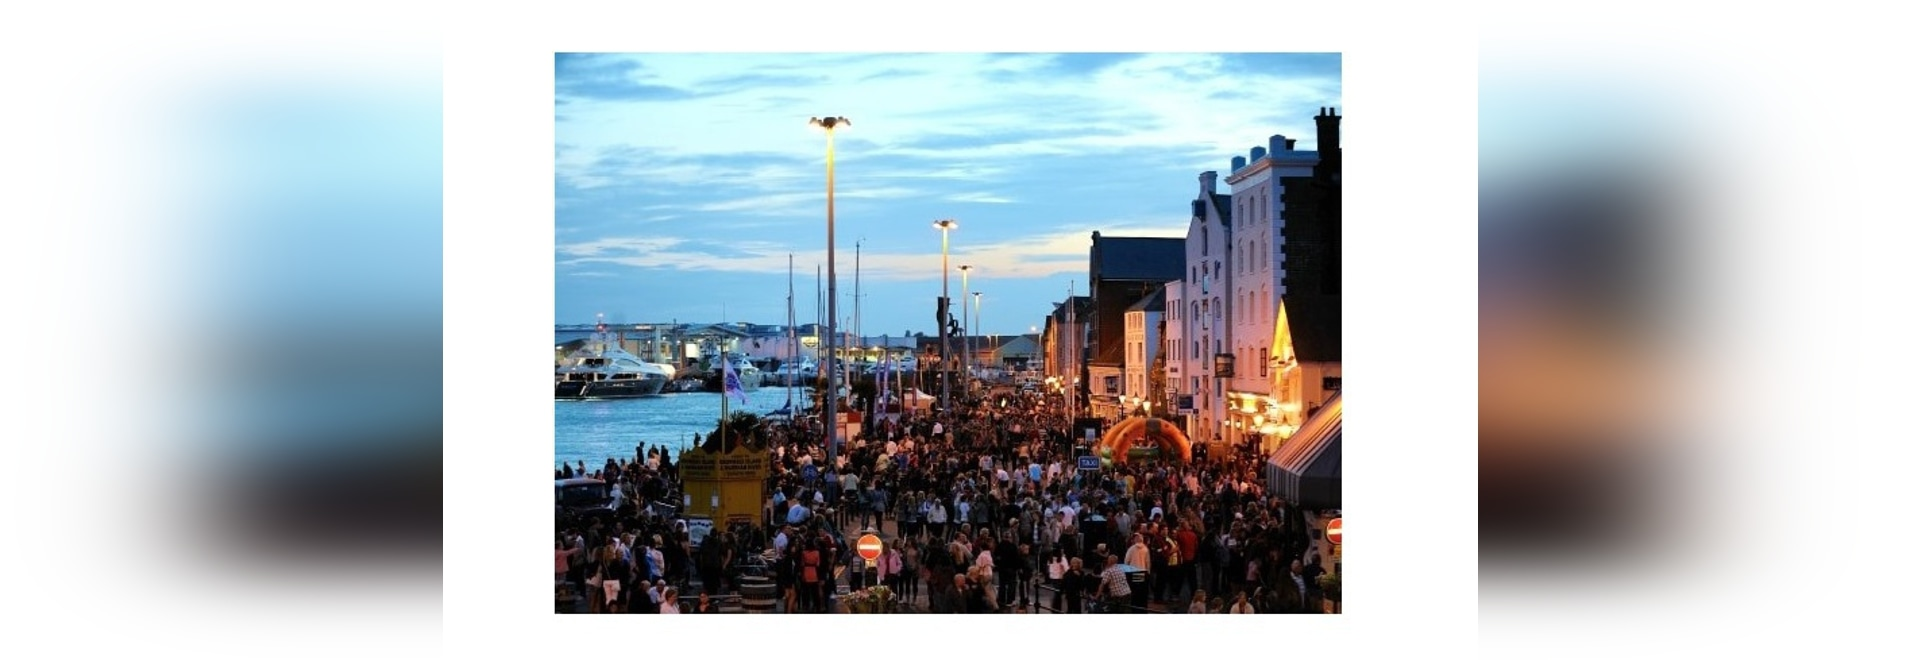 Poole Quay will provide a focal point for the Harbour Festival in May 2017